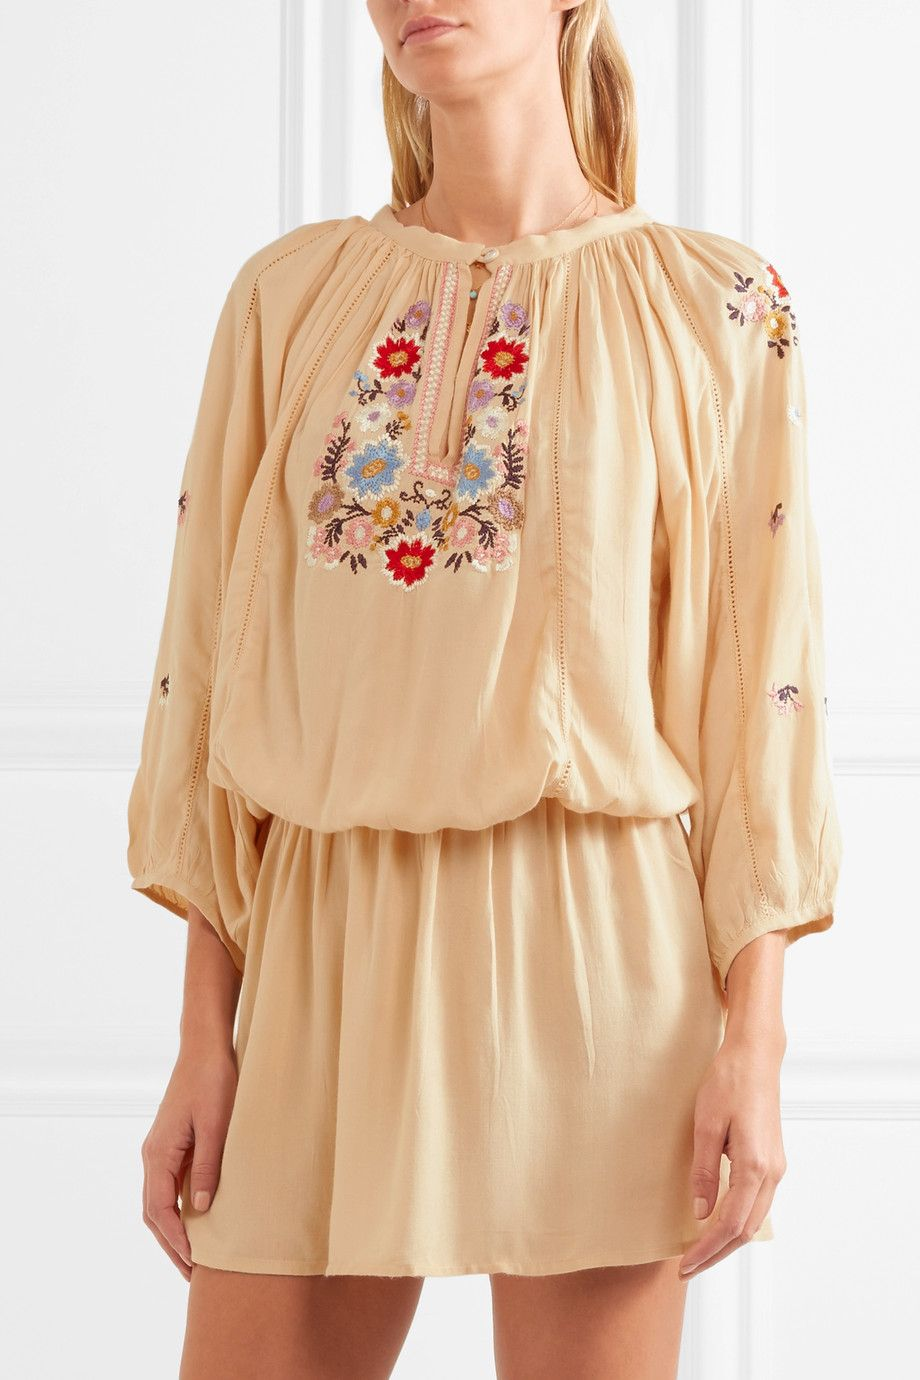 Melissa Odabash Woman Nadja Embroidered Voile Mini Dress Beige Size M Melissa Odabash Free Shipping Reliable b85nQy4